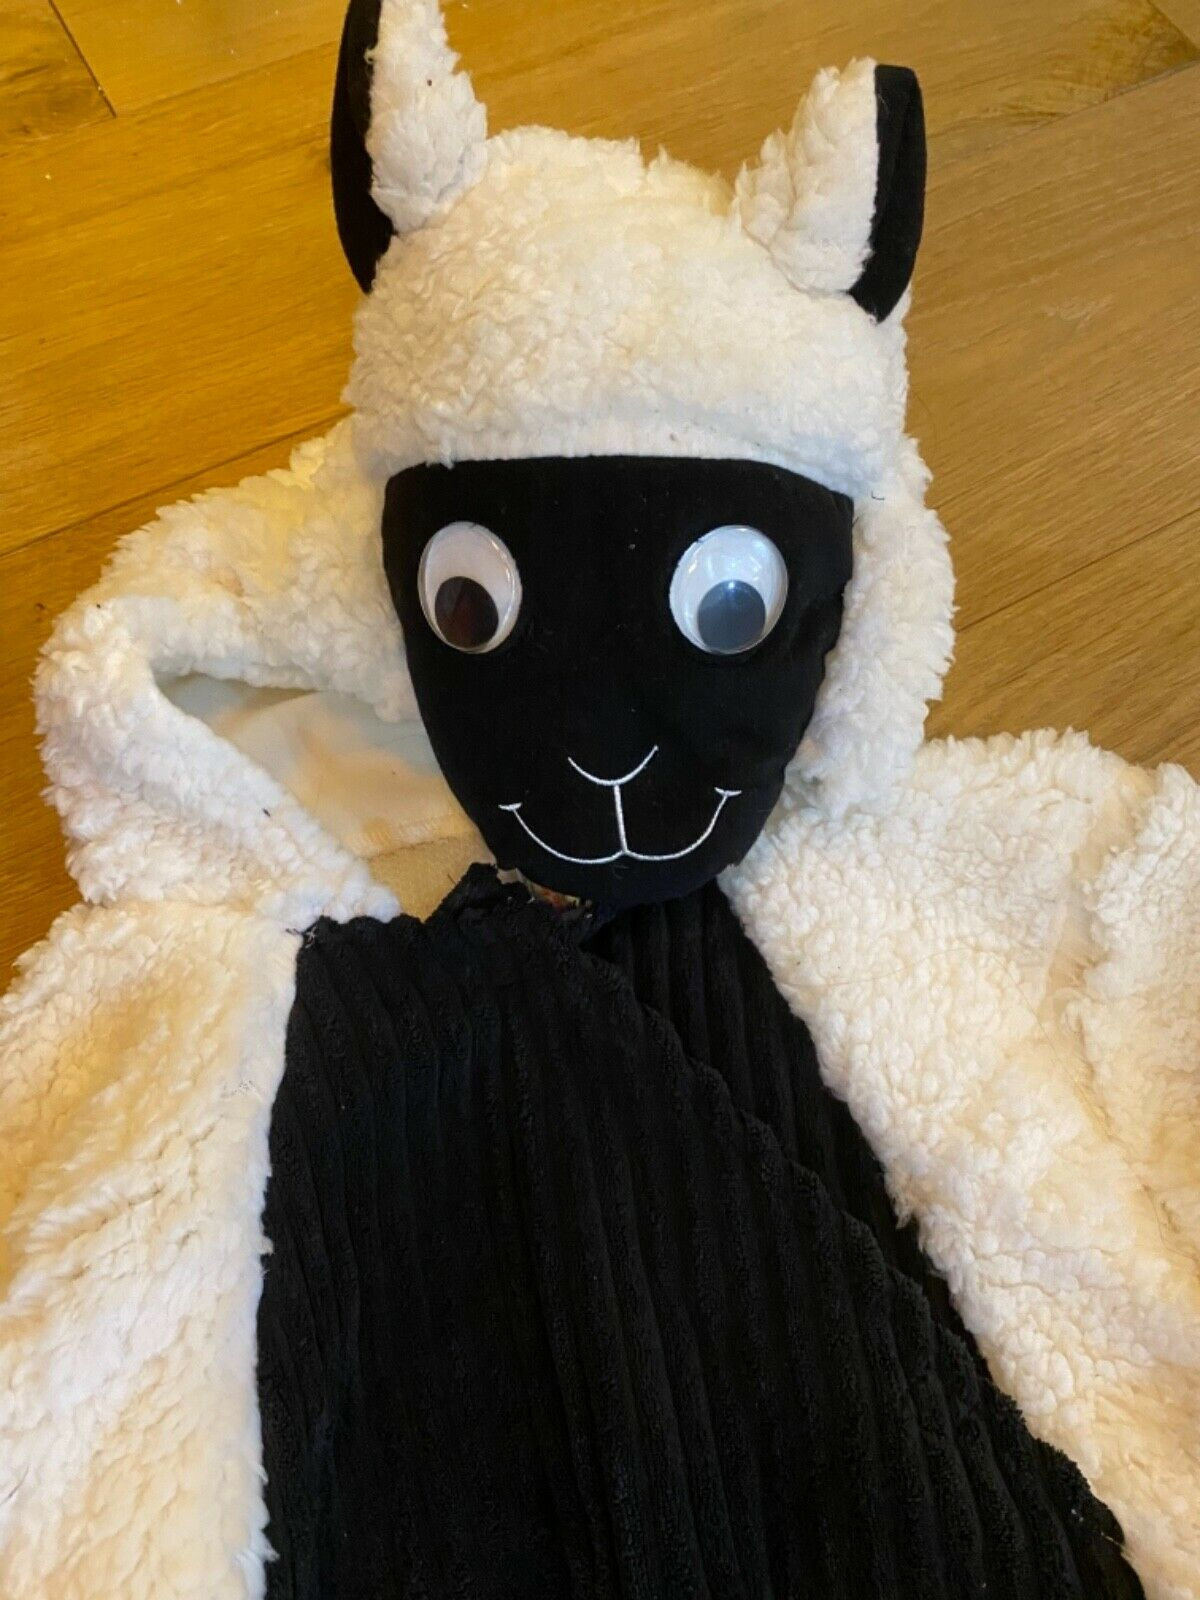 NEW WITH TAGS - CHRISTMAS NATIVITY SHEEP COSTUME 9-10 YEARS